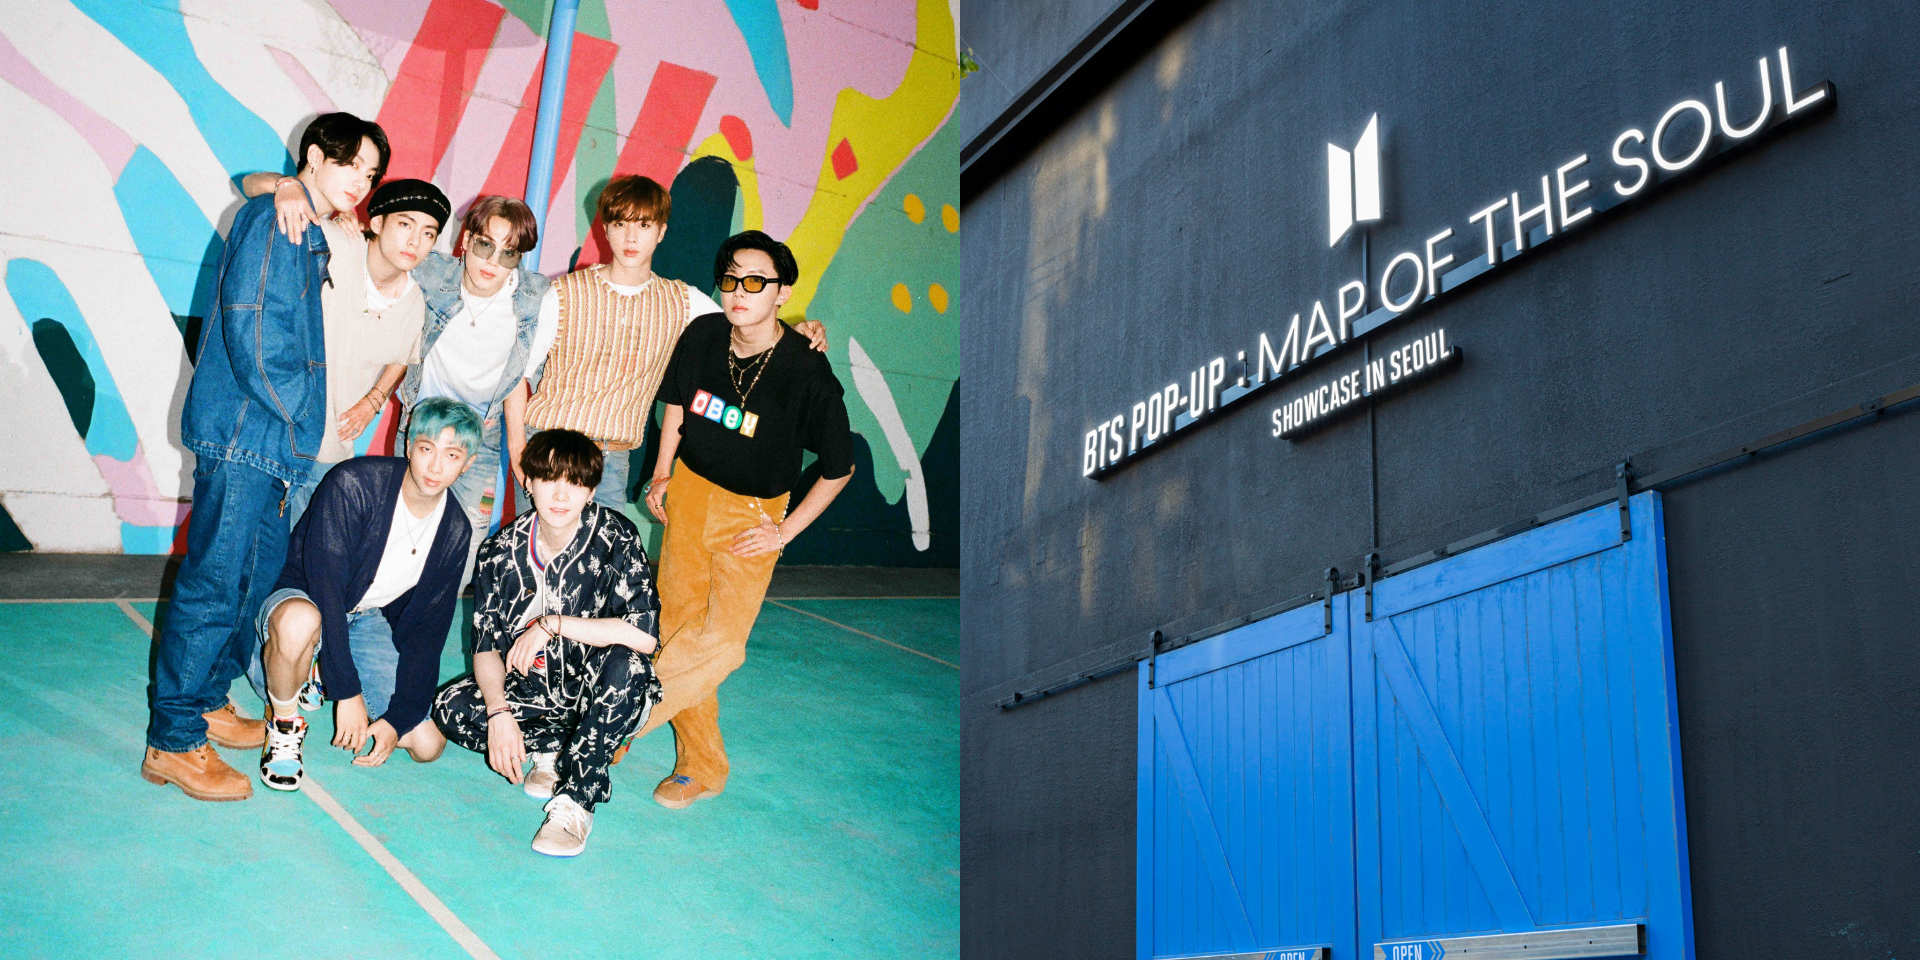 BTS open Map of the Soul online pop-up store, with showcases in Seoul, Singapore, and Tokyo, here's what you need to know